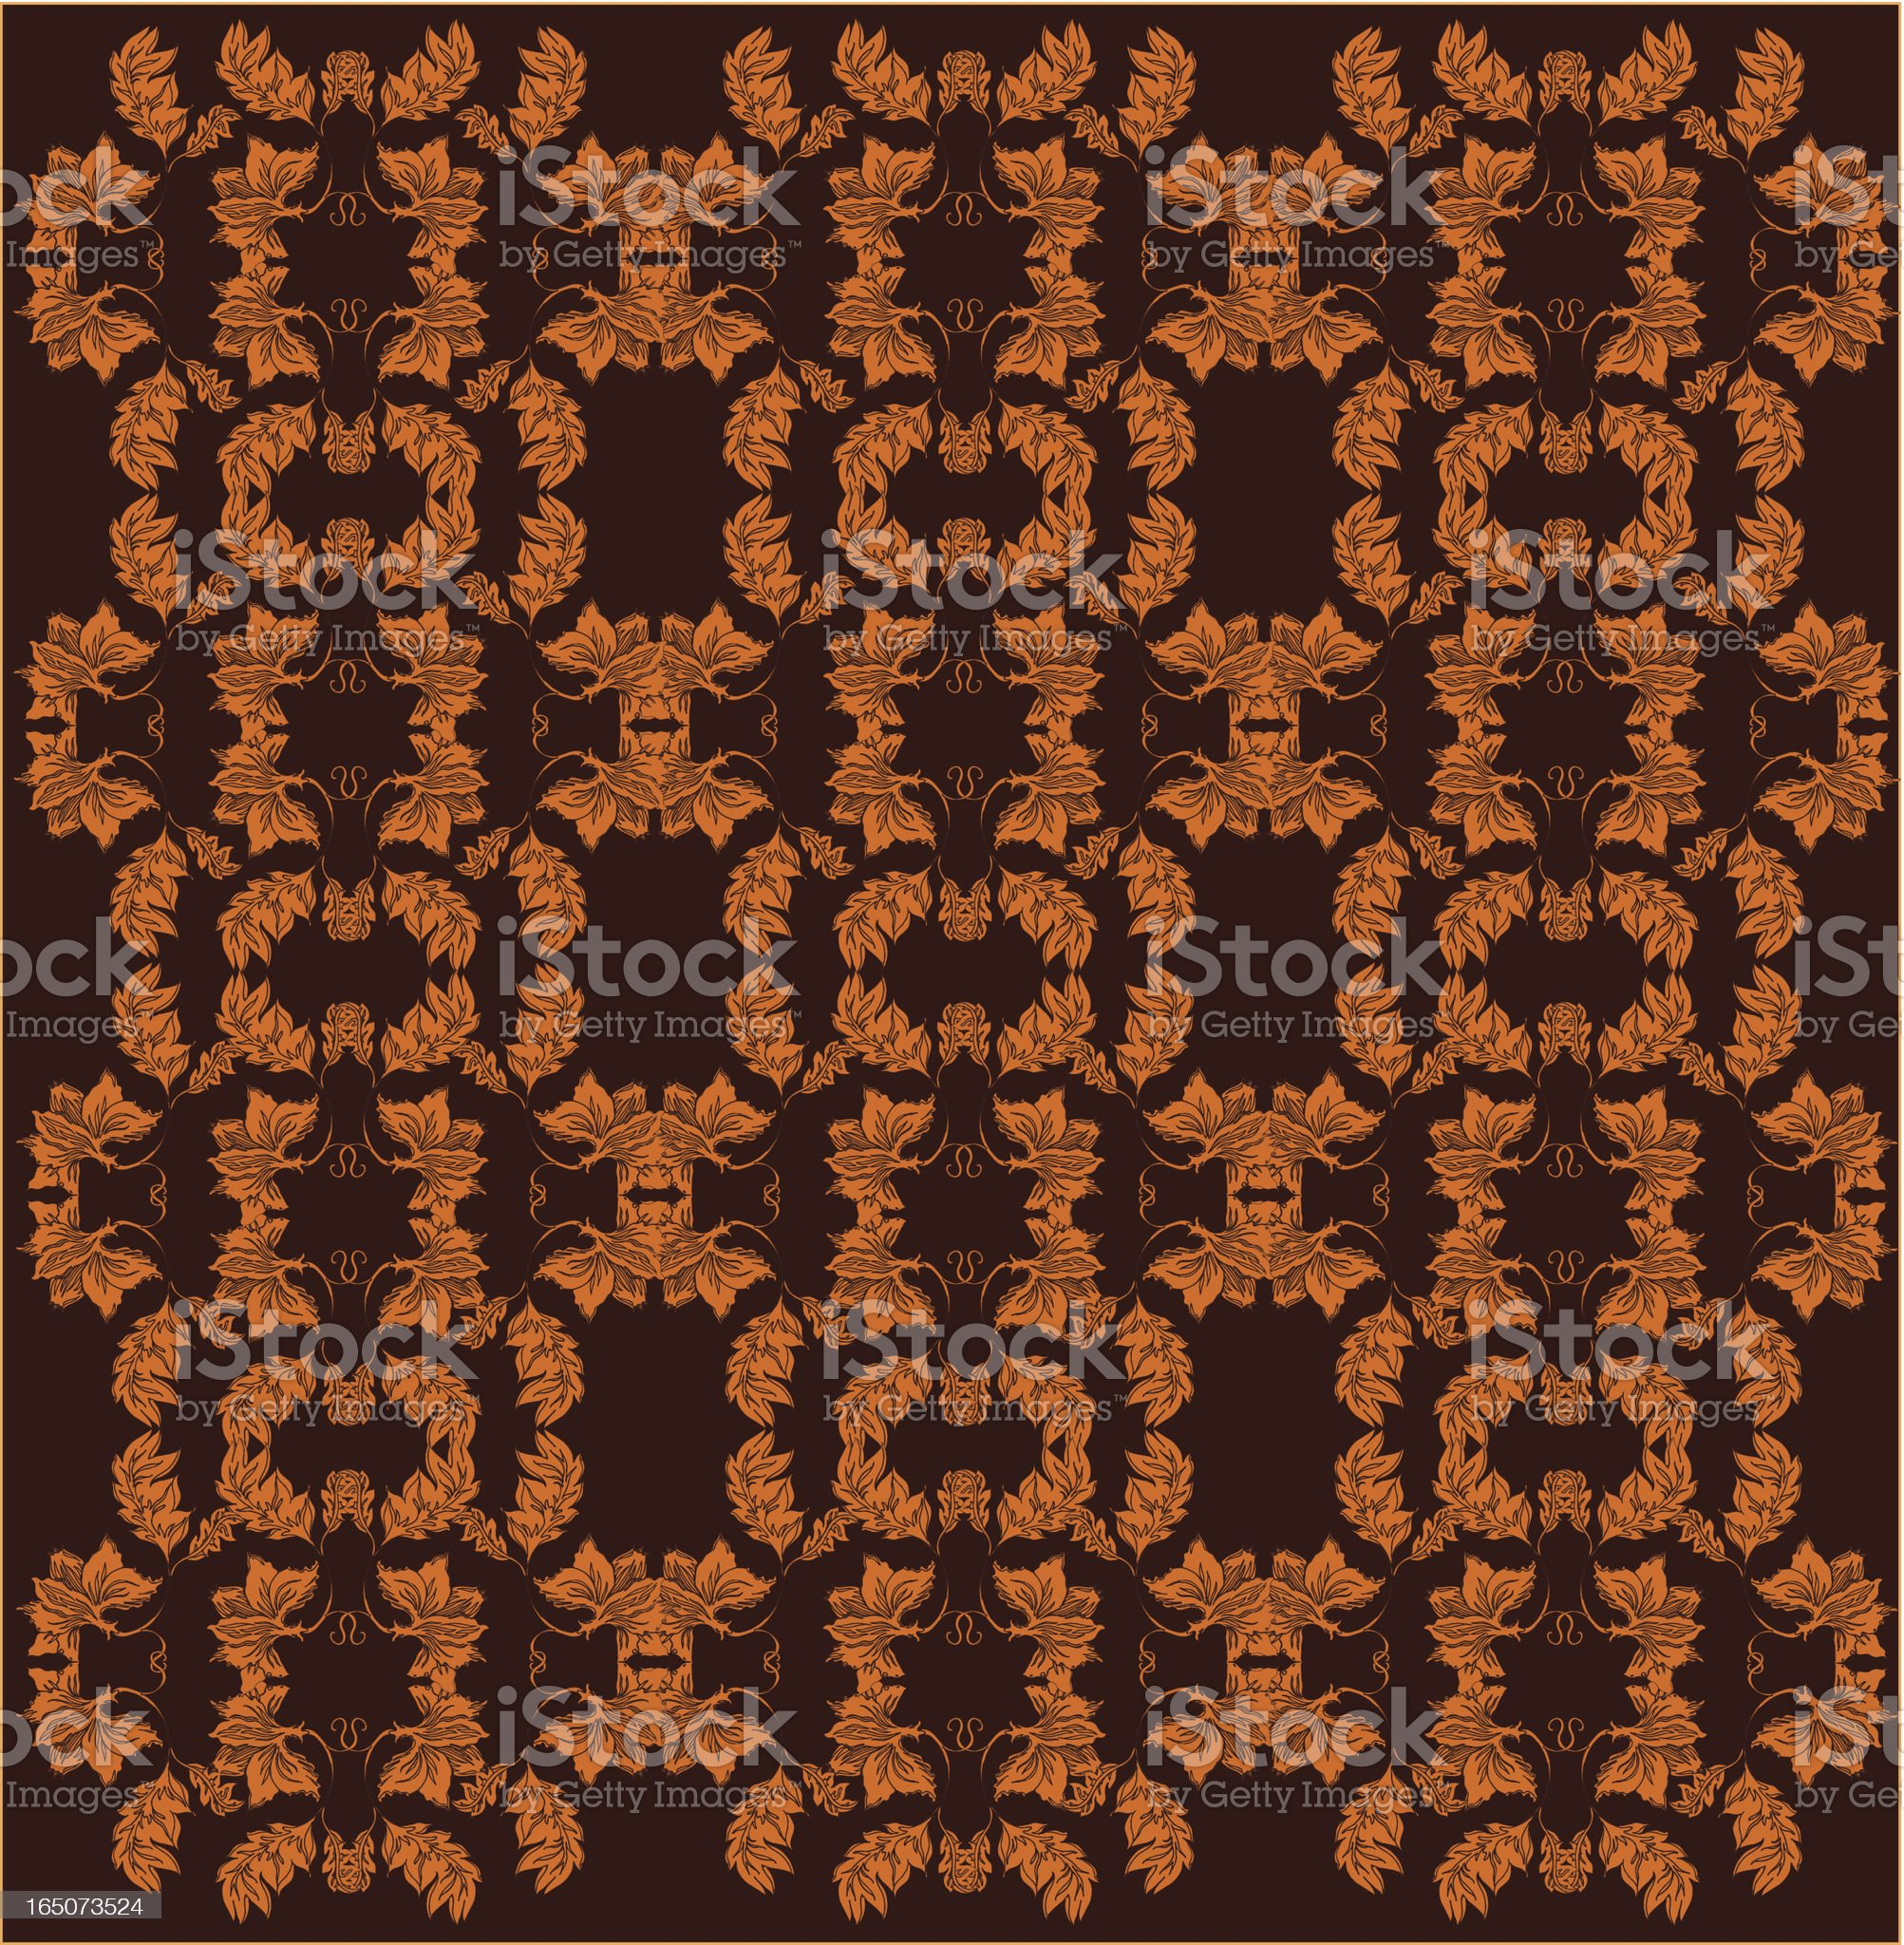 old fashioned wallpaper royalty-free stock vector art